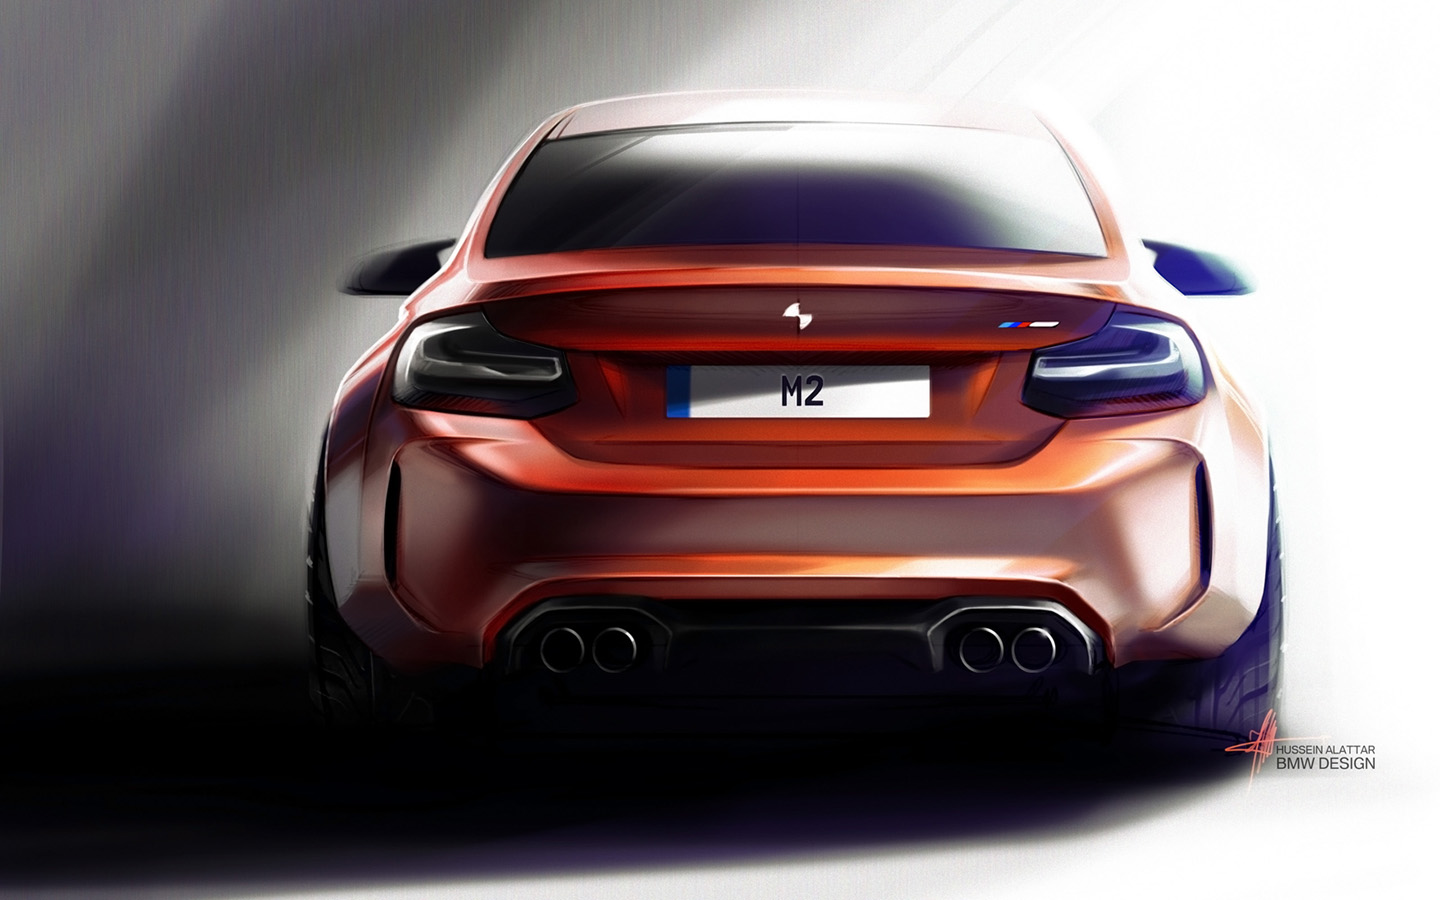 2016 BMW M2 Coupe   Sketches   3   1440x900   Wallpaper 1440x900